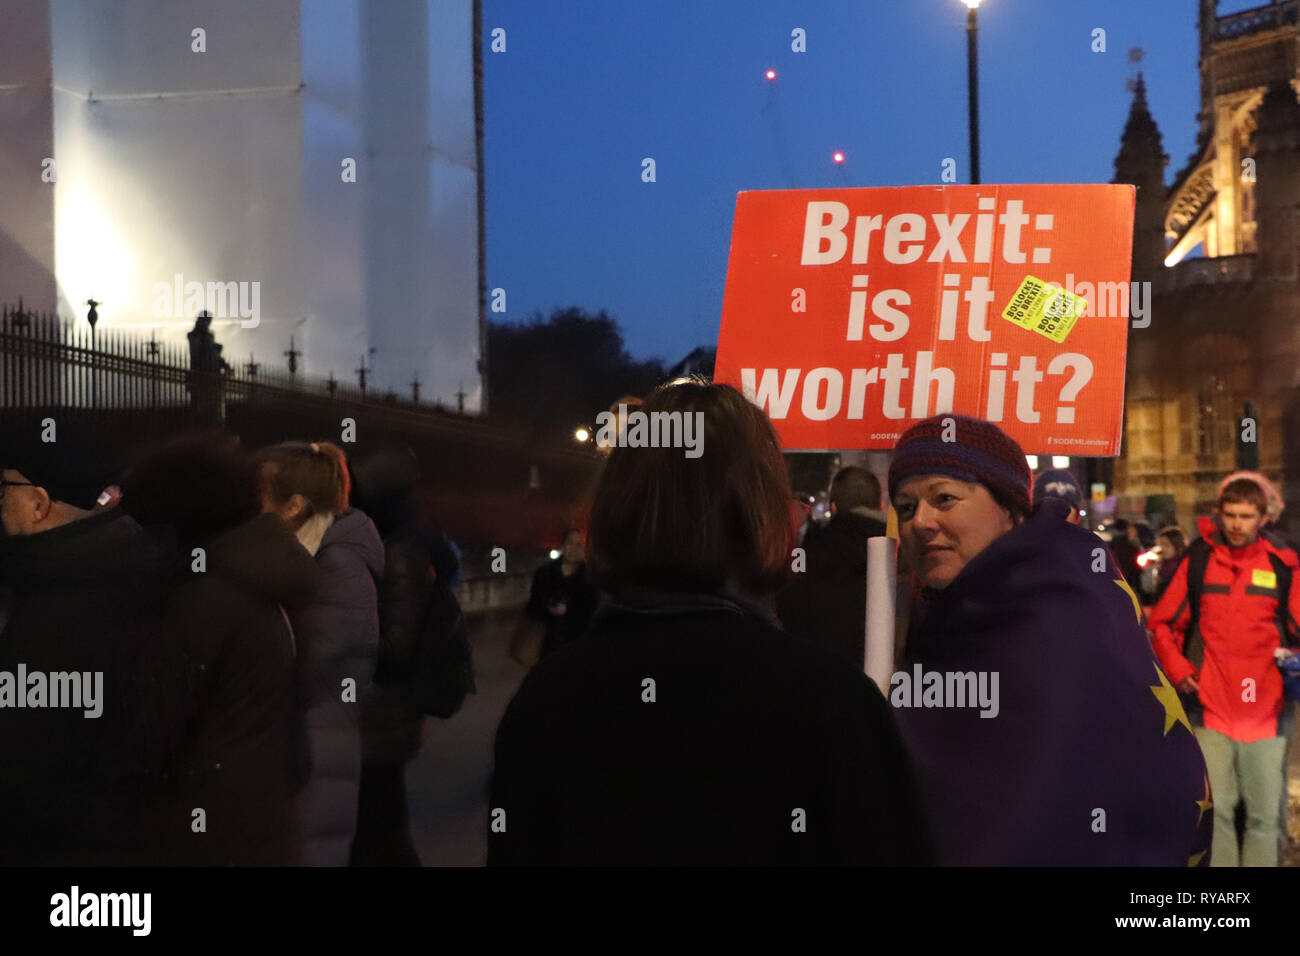 Brexit: is it worth it? - A Pro-remain demonstrator discusses Brexit outside the Houses of Parliament on the evening of the Meaningful Vote on Brexit. - Stock Image